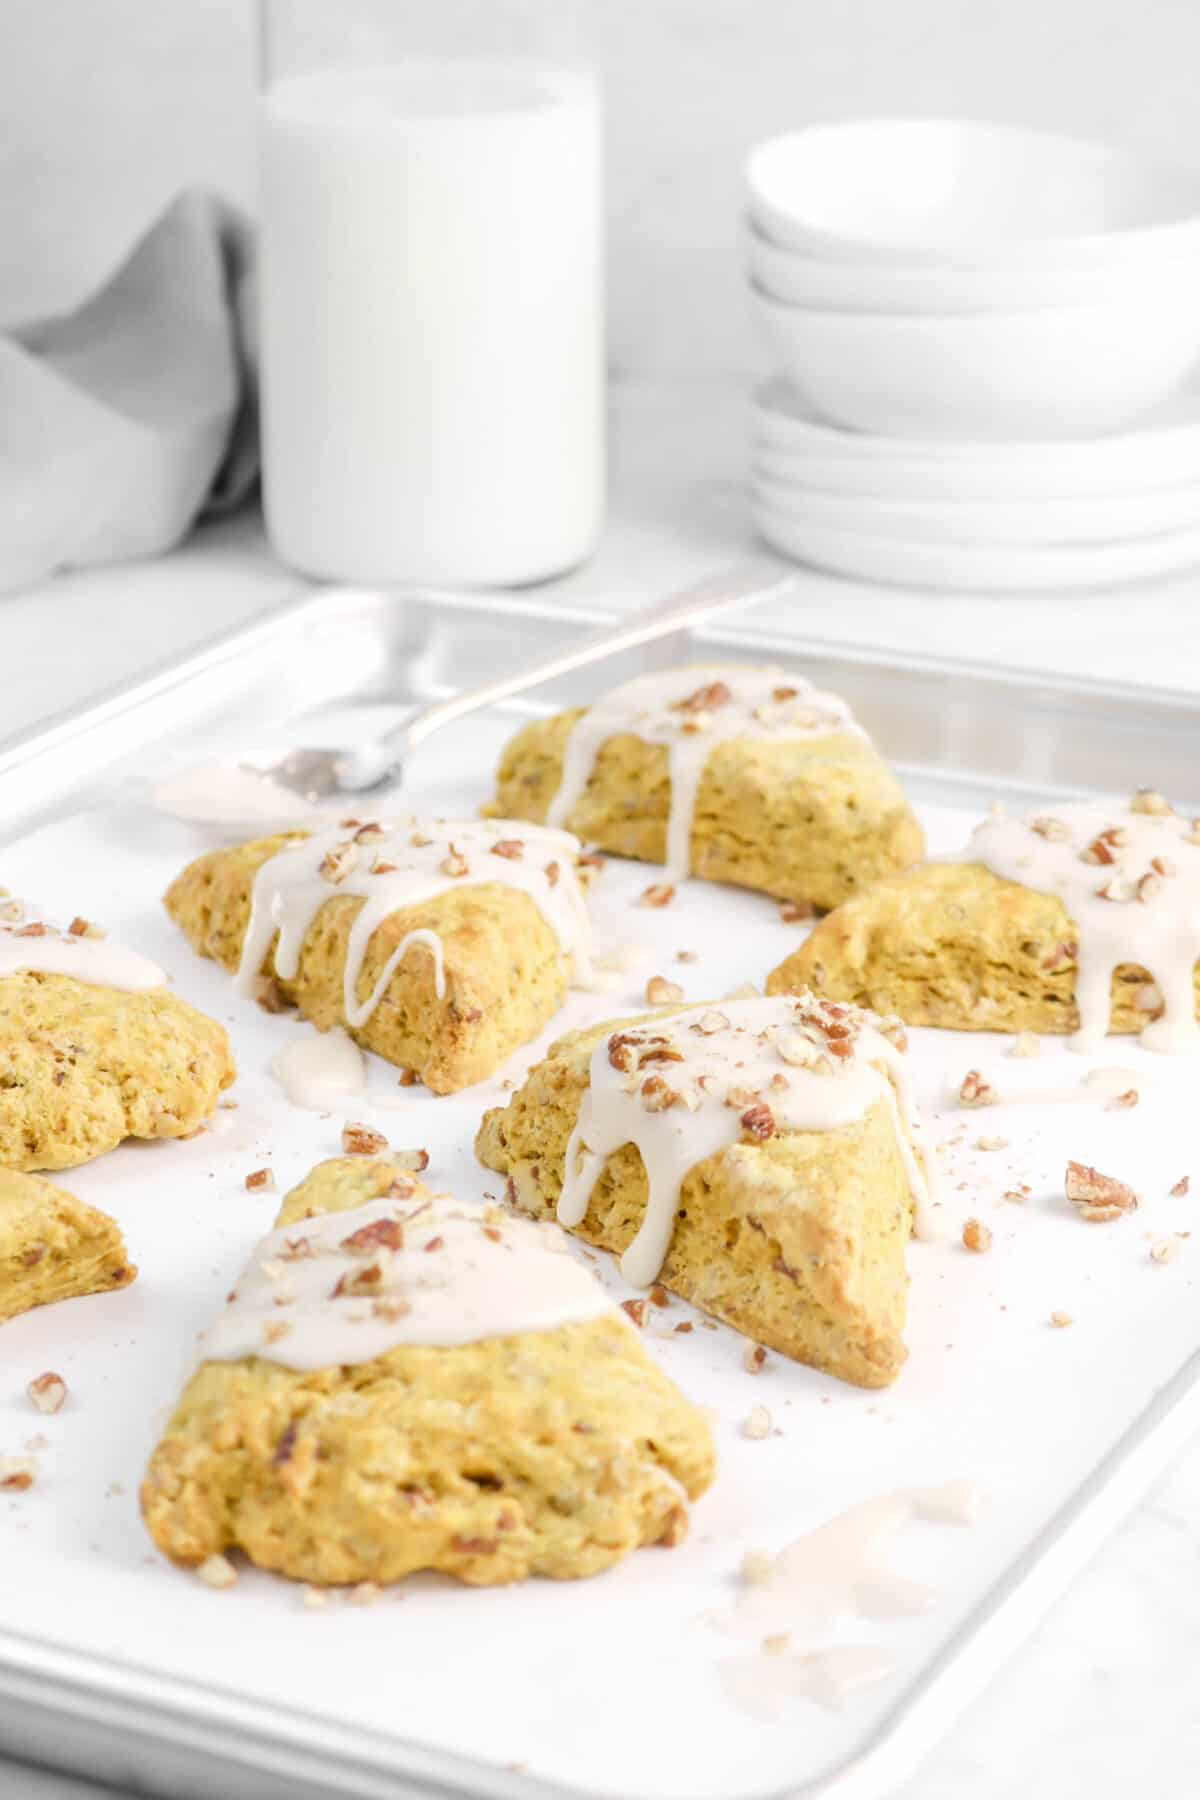 glazed scones on a sheet pan with milk, plates, bowls, and a napkin